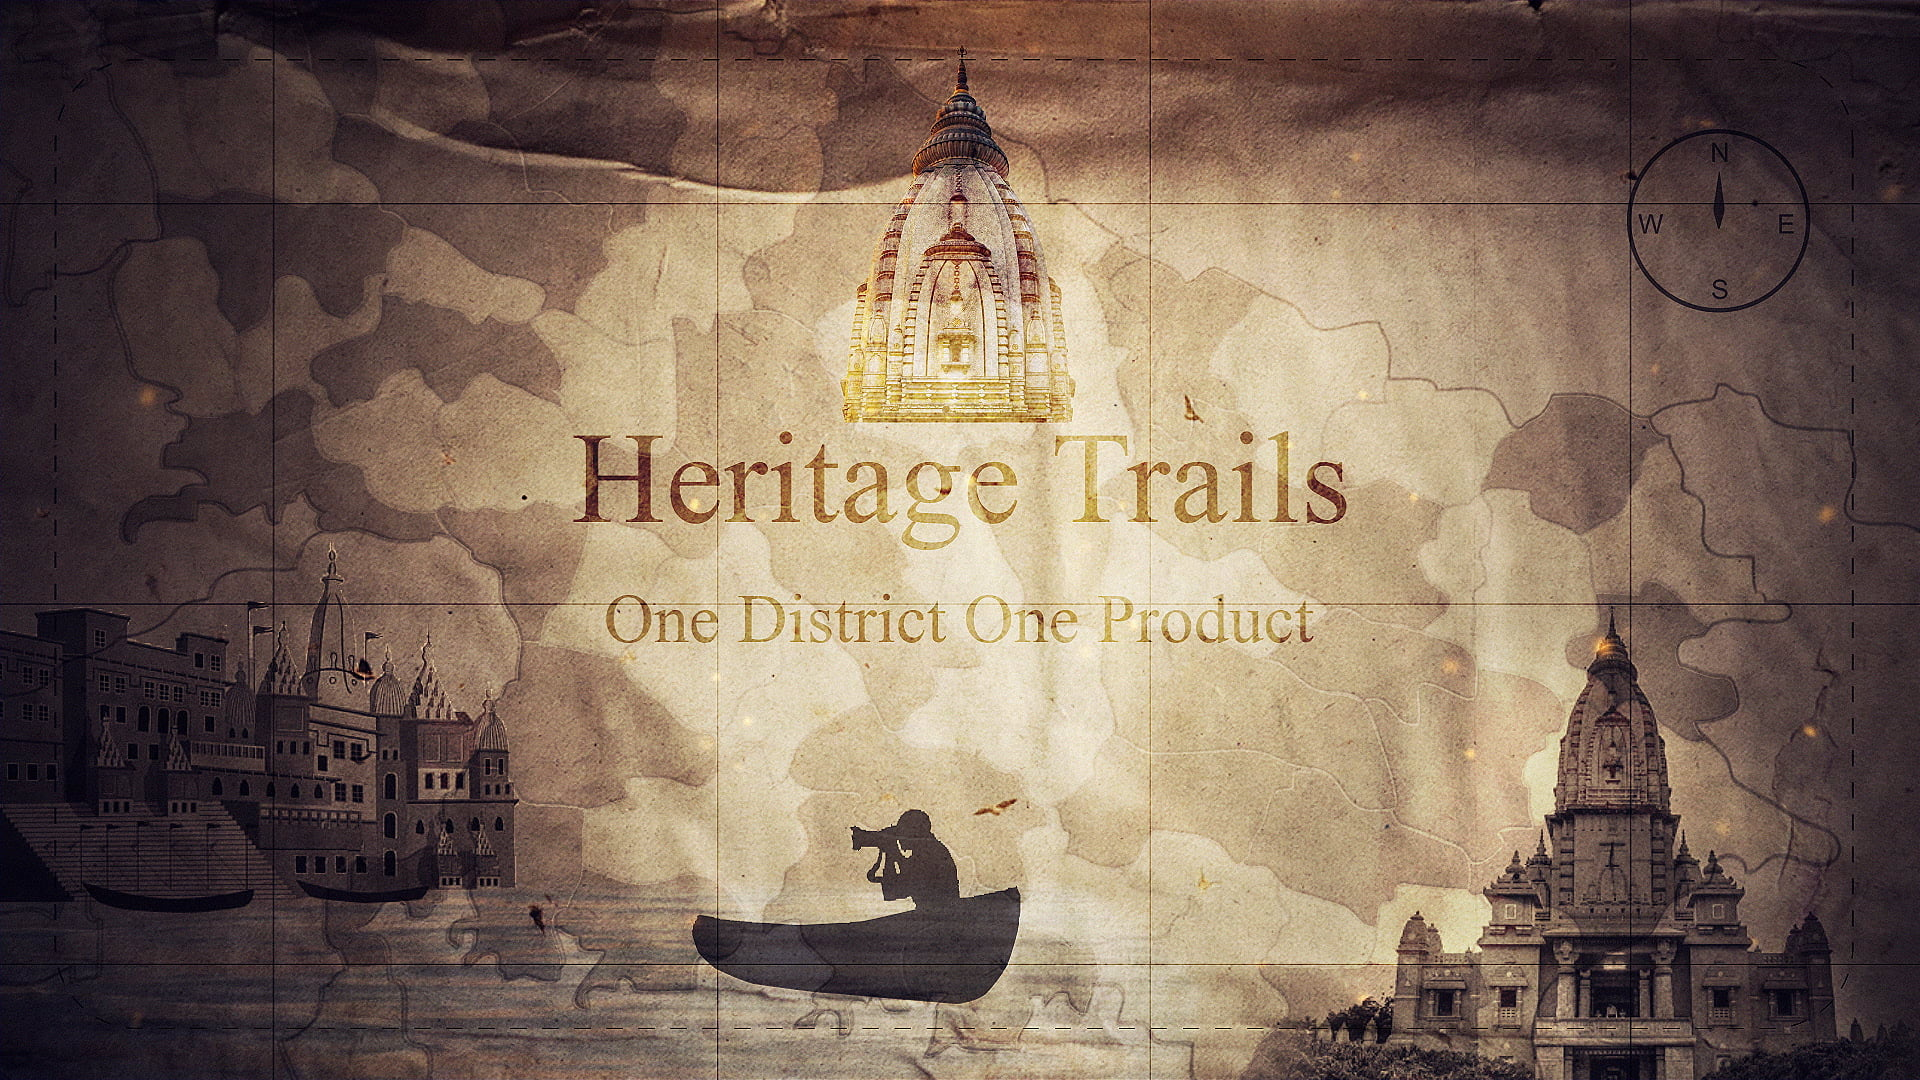 Heritage Trails One District One Product